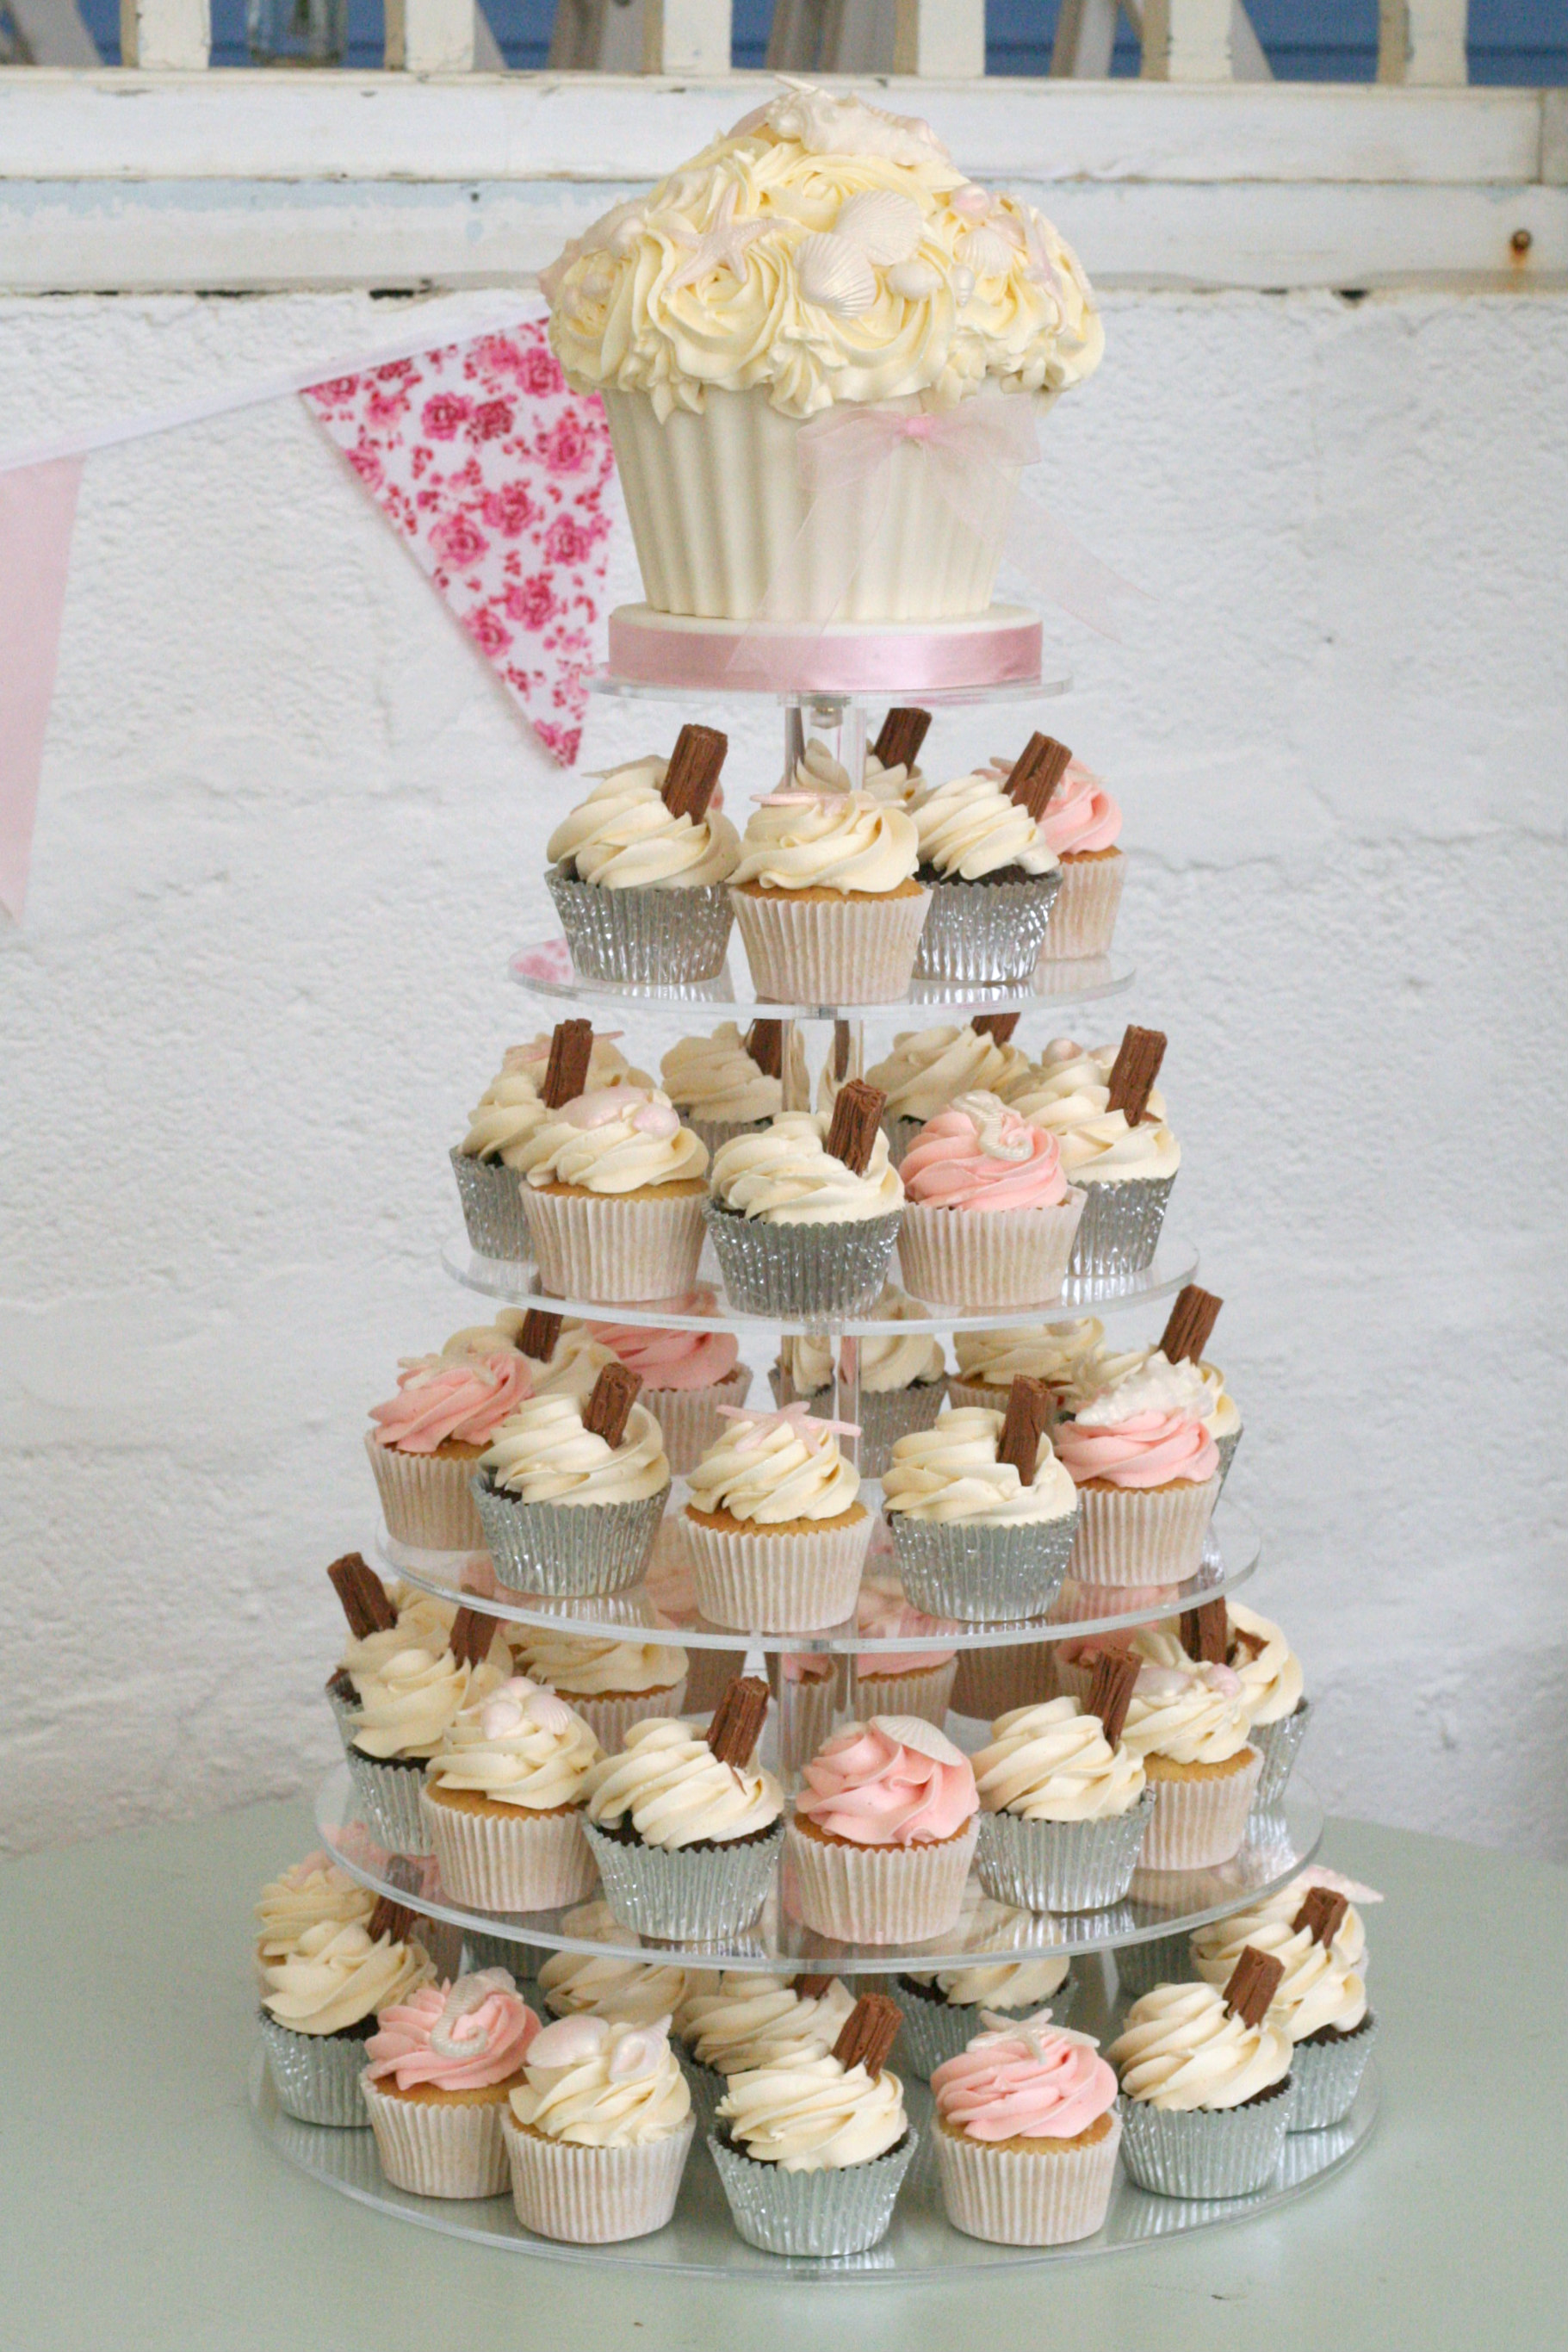 blush pink giant and cupcakes.jpg